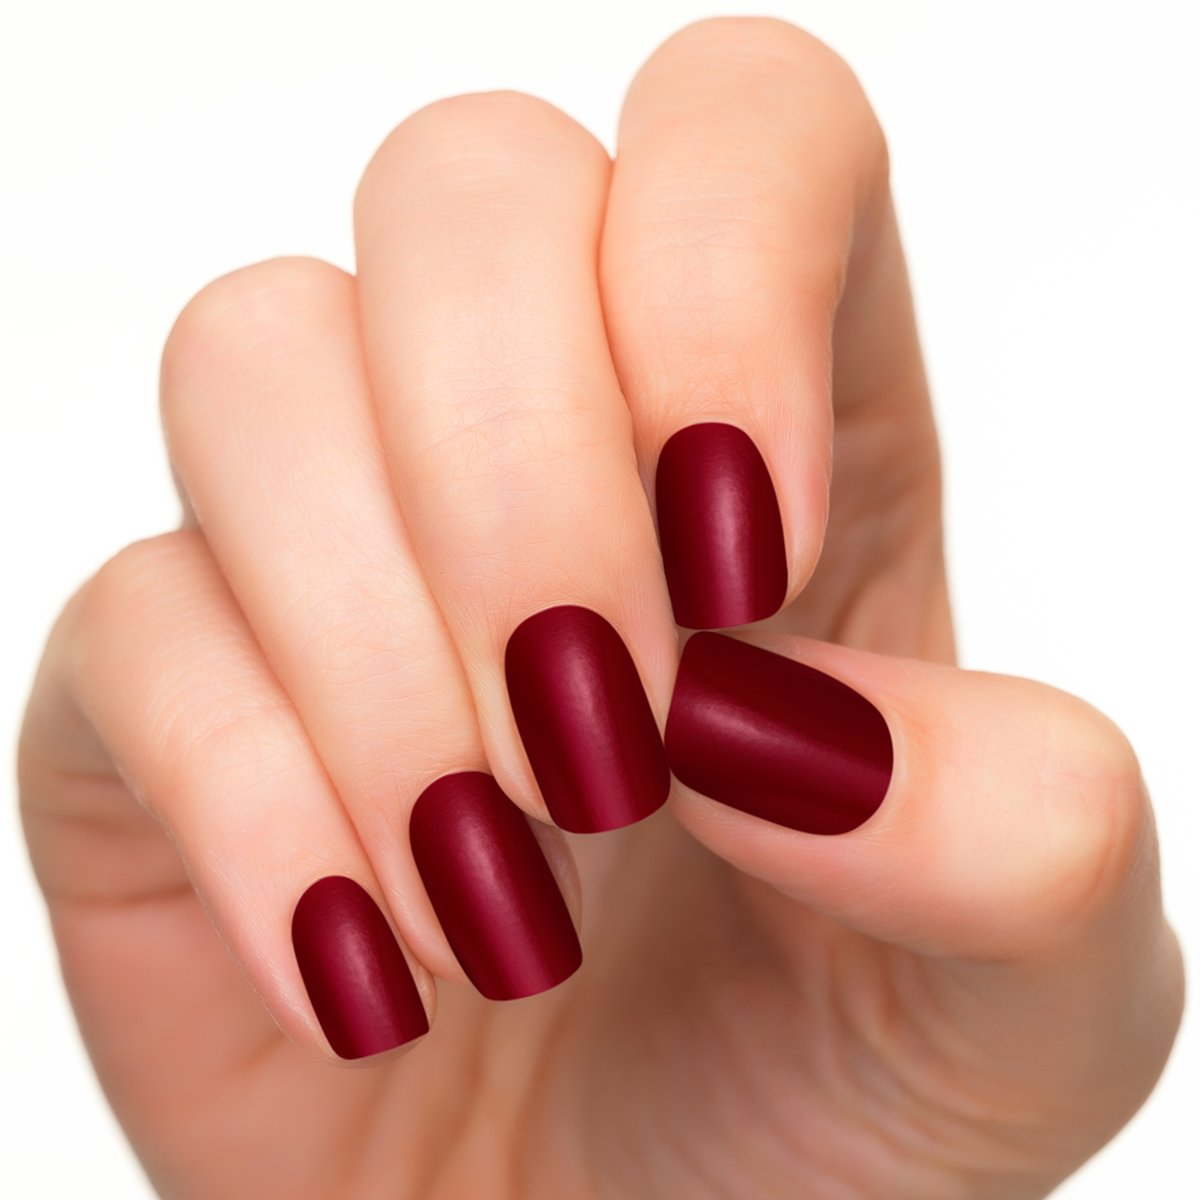 Amazon.com : Incoco Nail Polish Strips, Nail Color, Red Velvet ...